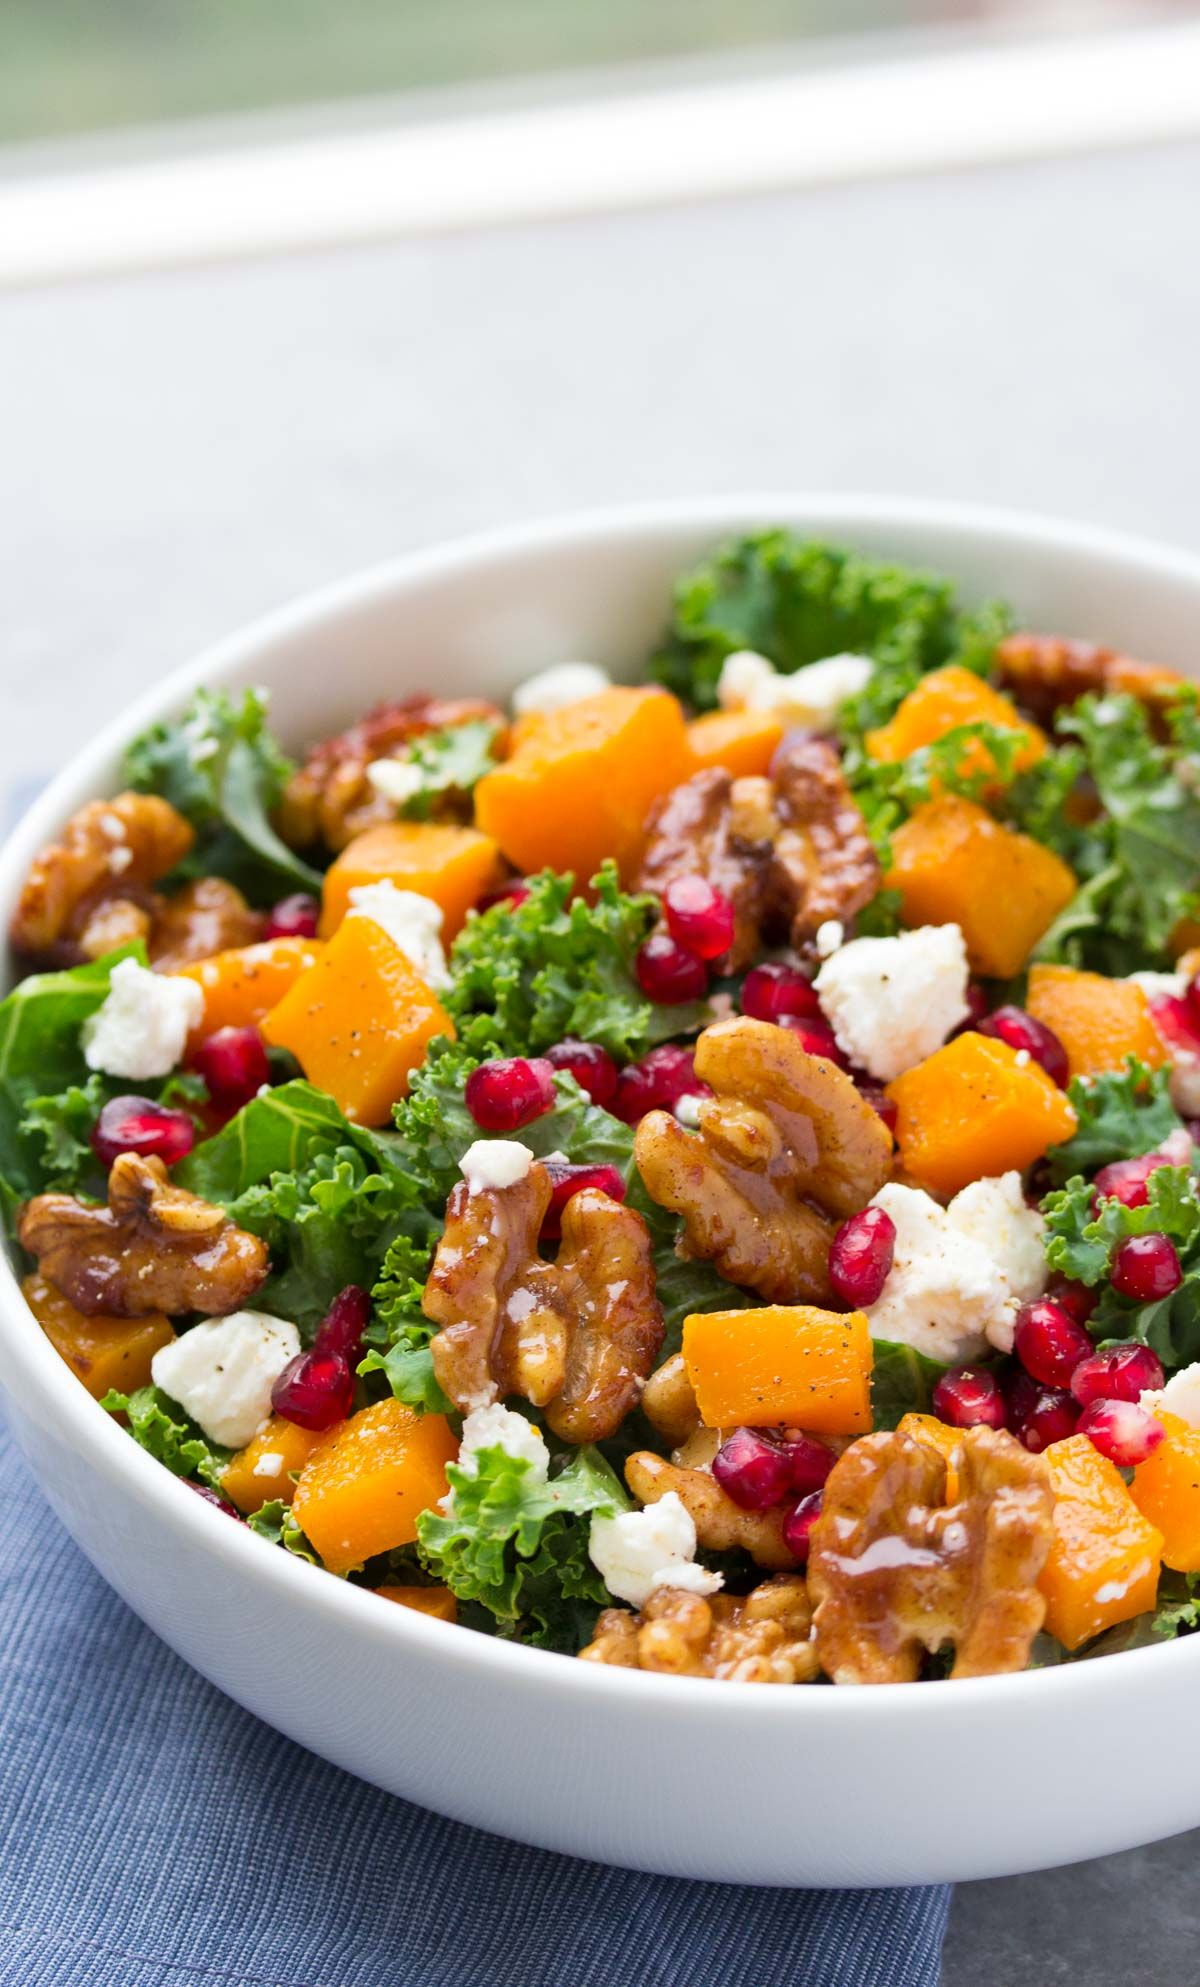 A healthy and festive holiday salad for Thanksgiving, Christmas or any day! This Butternut Squash and Pomegranate Kale Salad with Spiced Honey Walnuts has a yummy maple dressing!